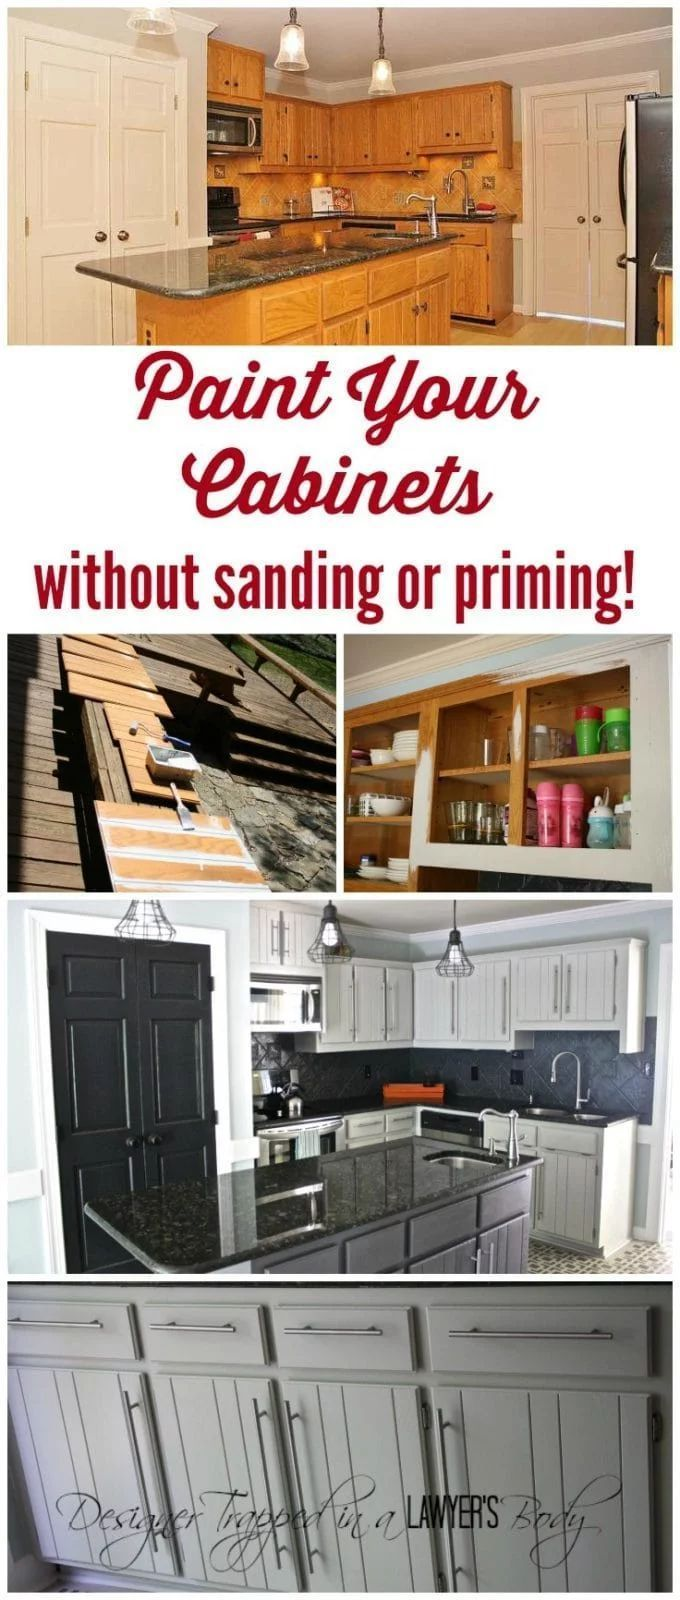 How To Paint Kitchen Cabinets Without Sanding Or Priming Step By Step In 2020 Kitchen Cabinets Painting Kitchen Cabinets Kitchen Renovation,Luxury Studio Apartments Decor Ideas